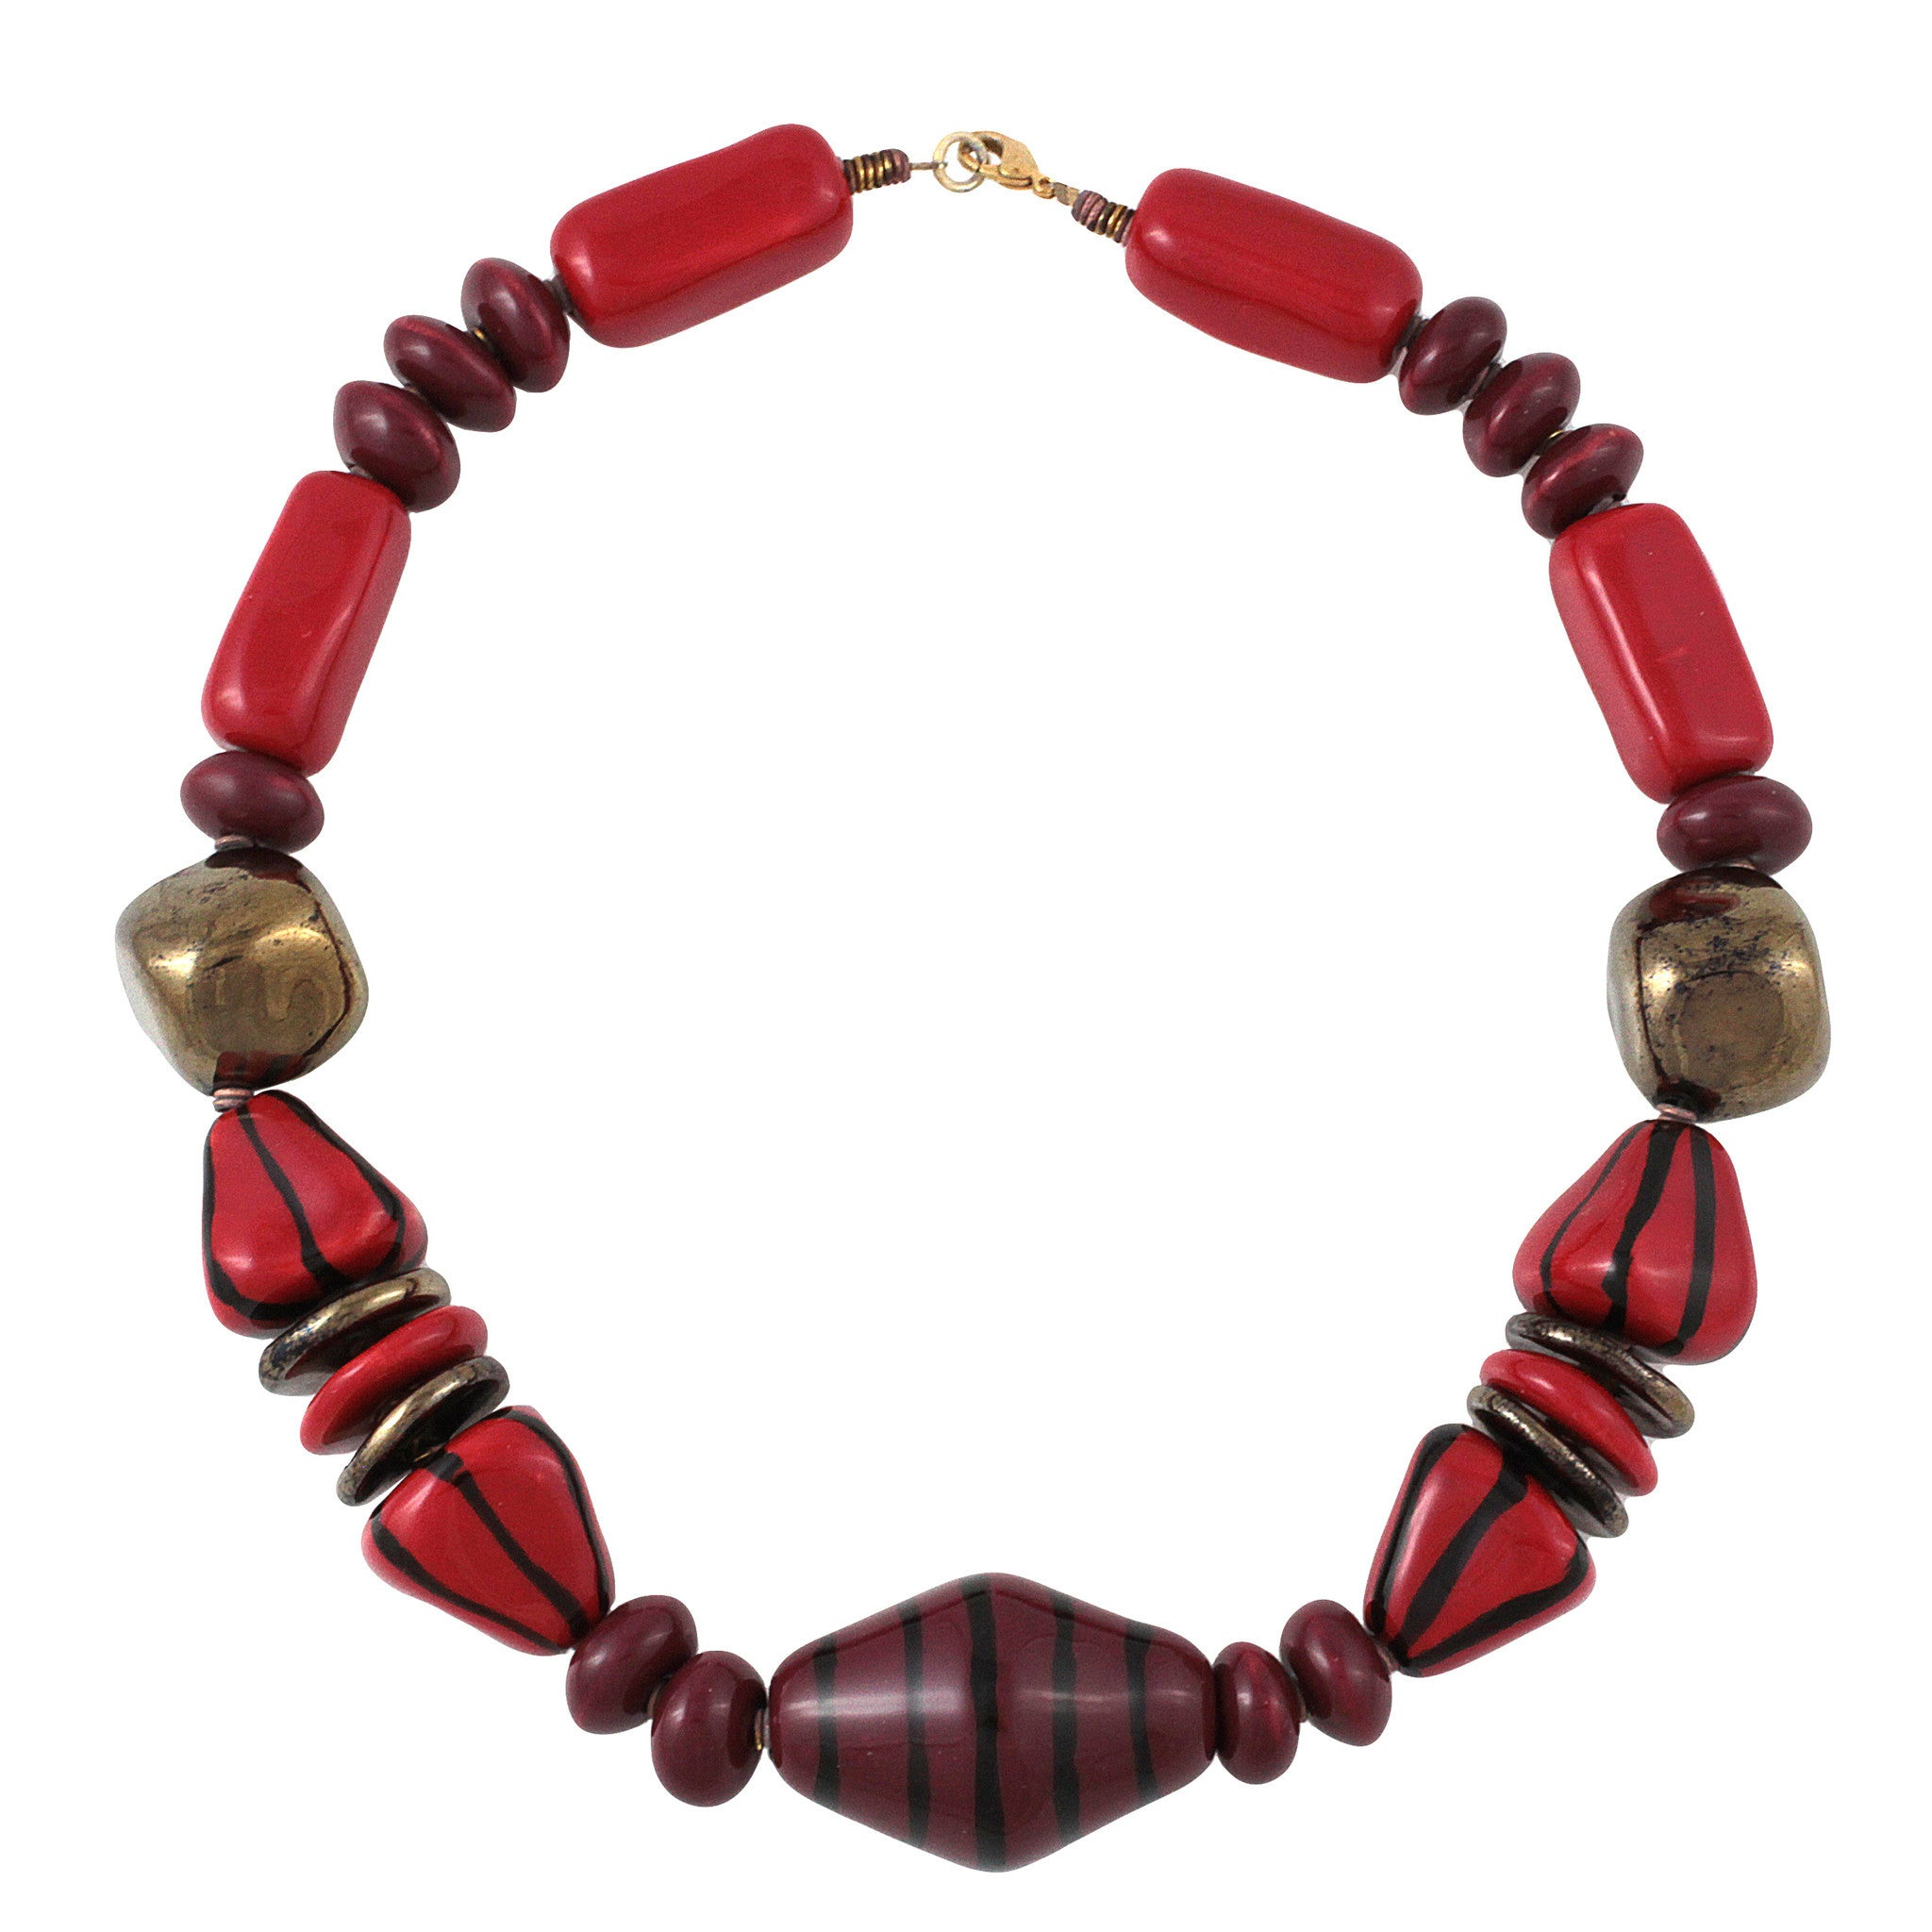 Firefly: Kenyan Hand Made Ceramic Bead Necklace